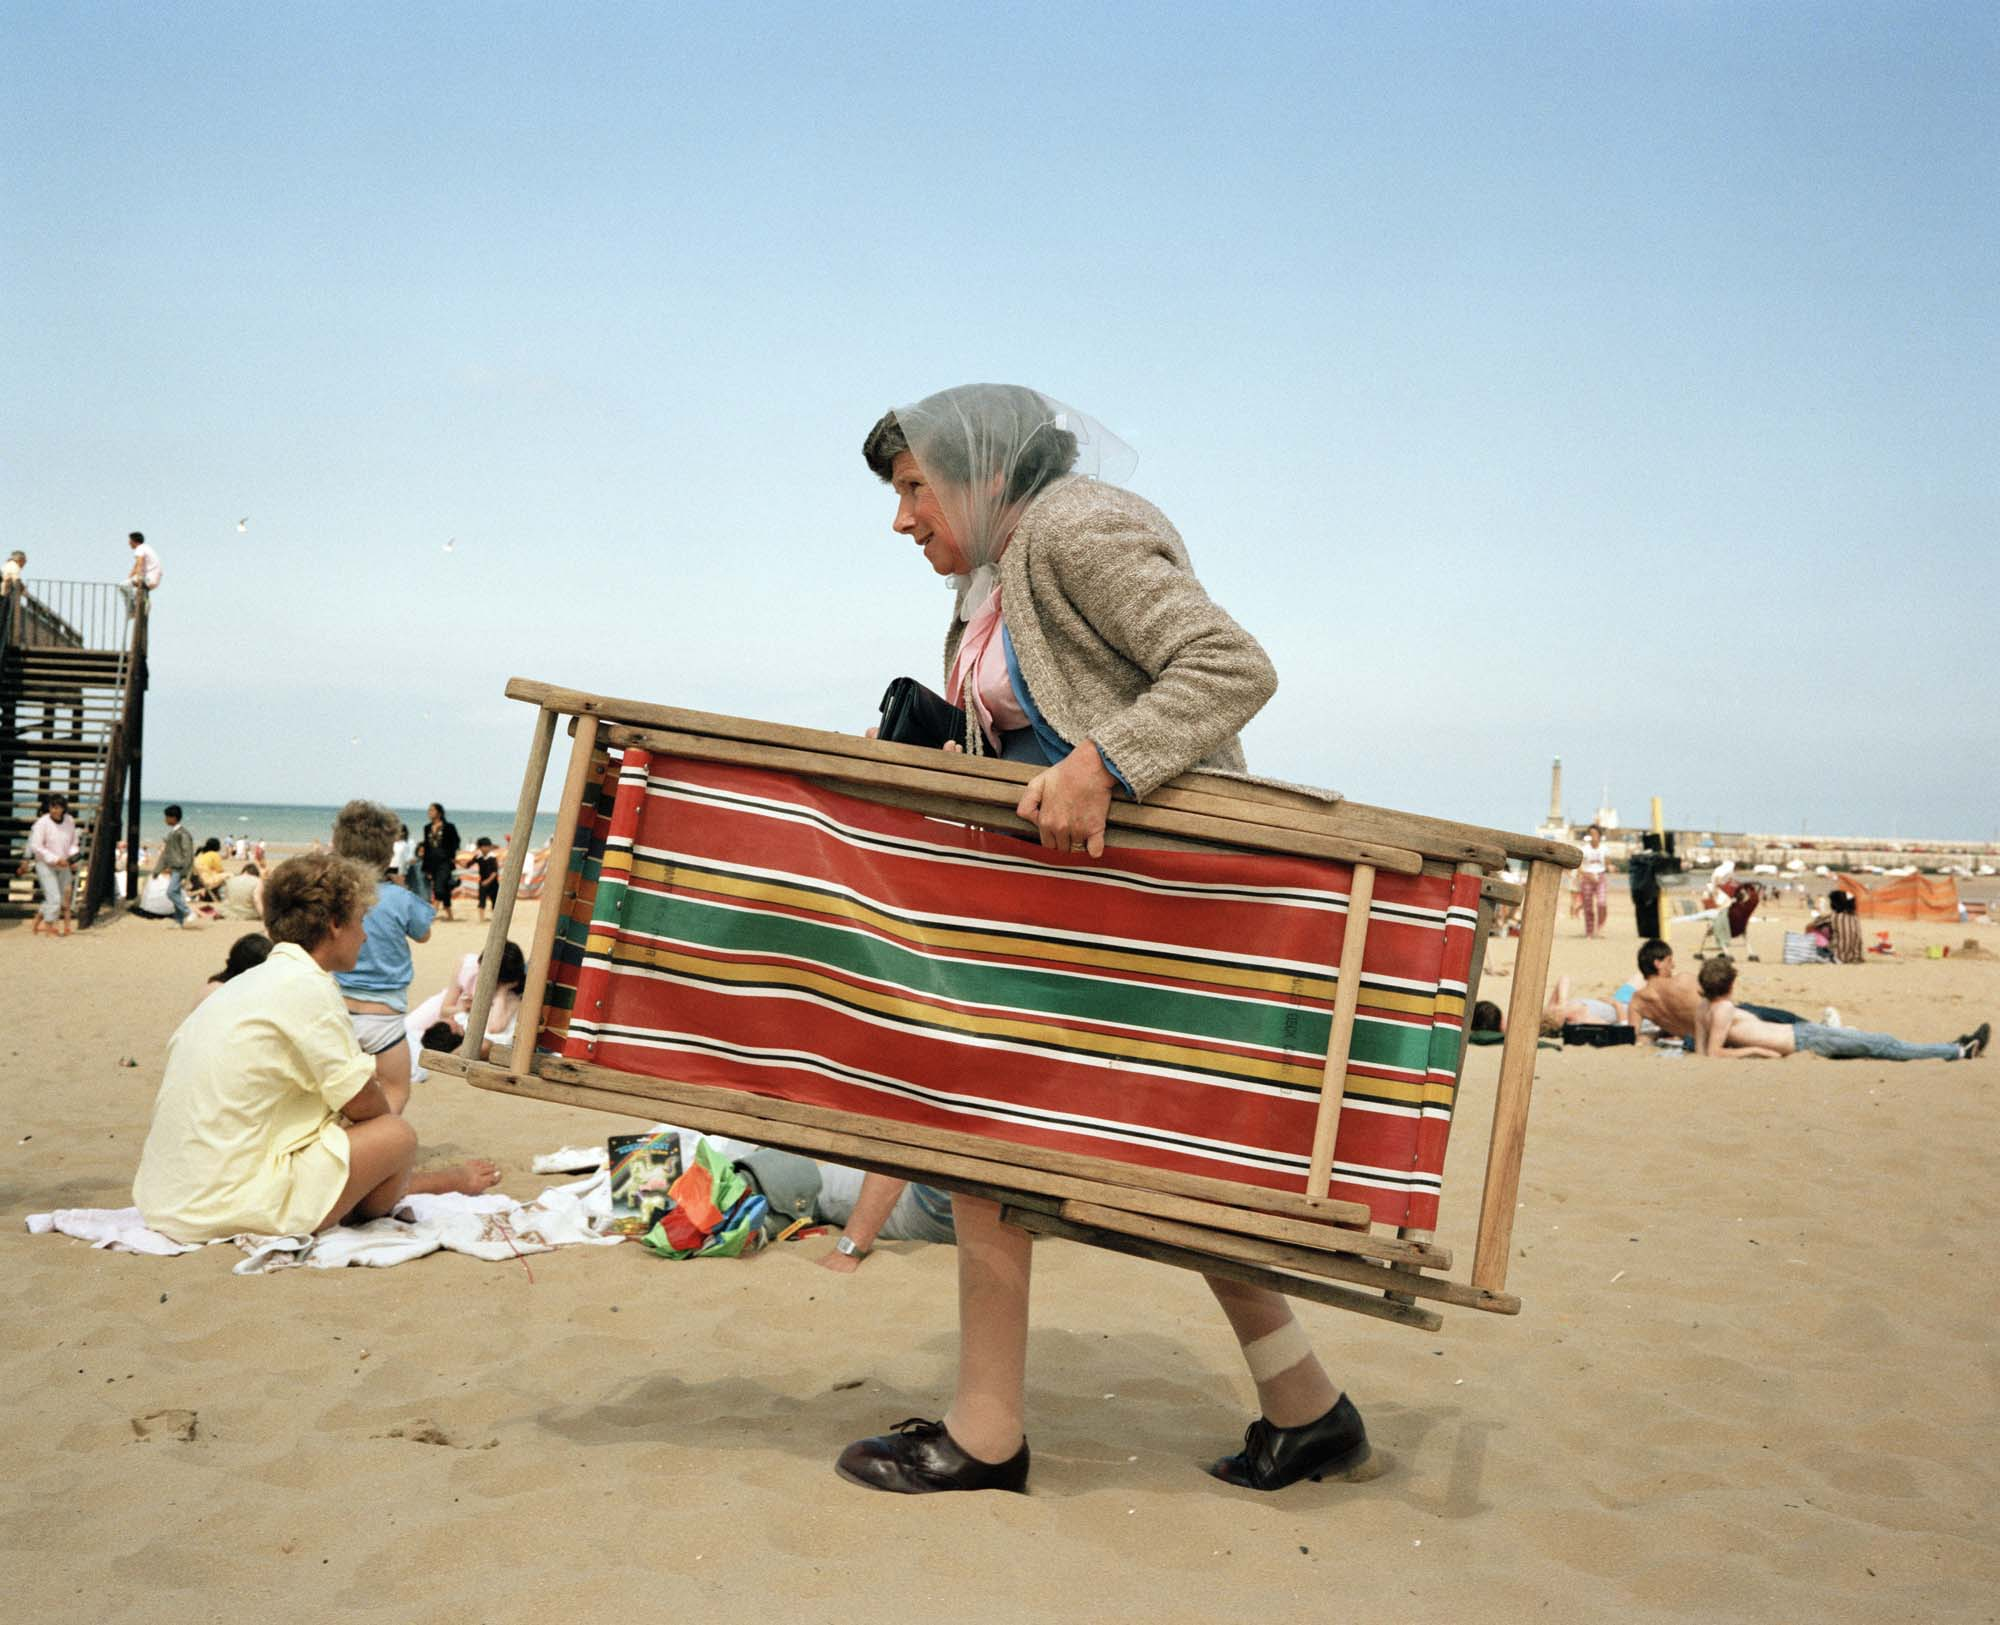 a Martin Parr photograph of an old lady carrying a deck chair across a beach